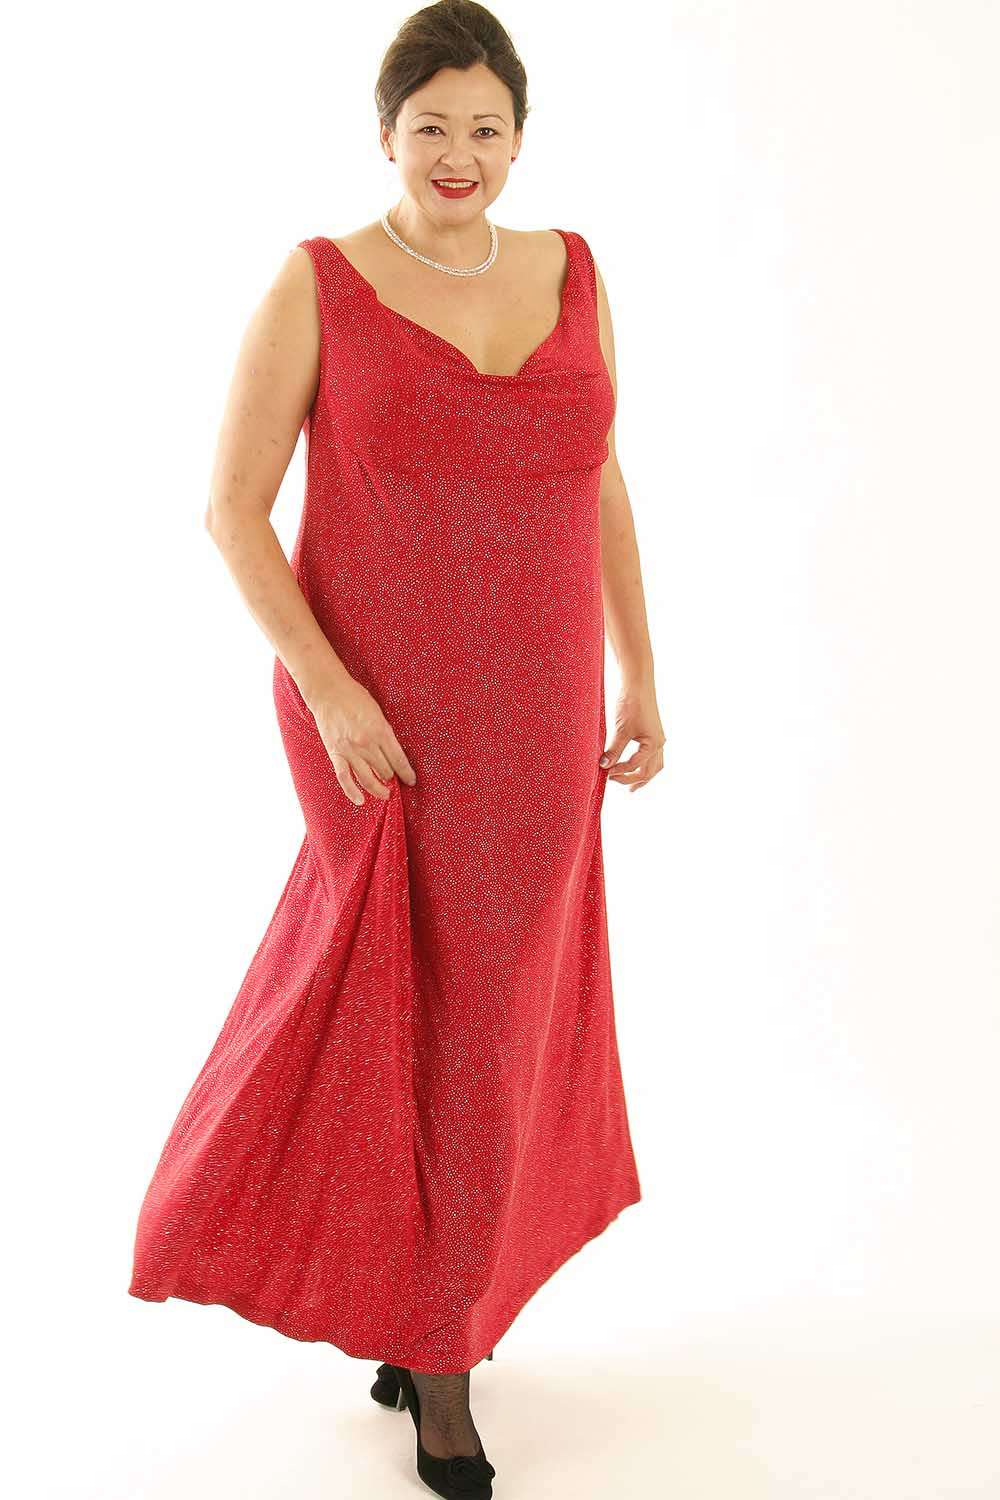 Plus Size Empire Evening Gown Sleeveless Red Sparkle Slinky Sizes 14 - 24